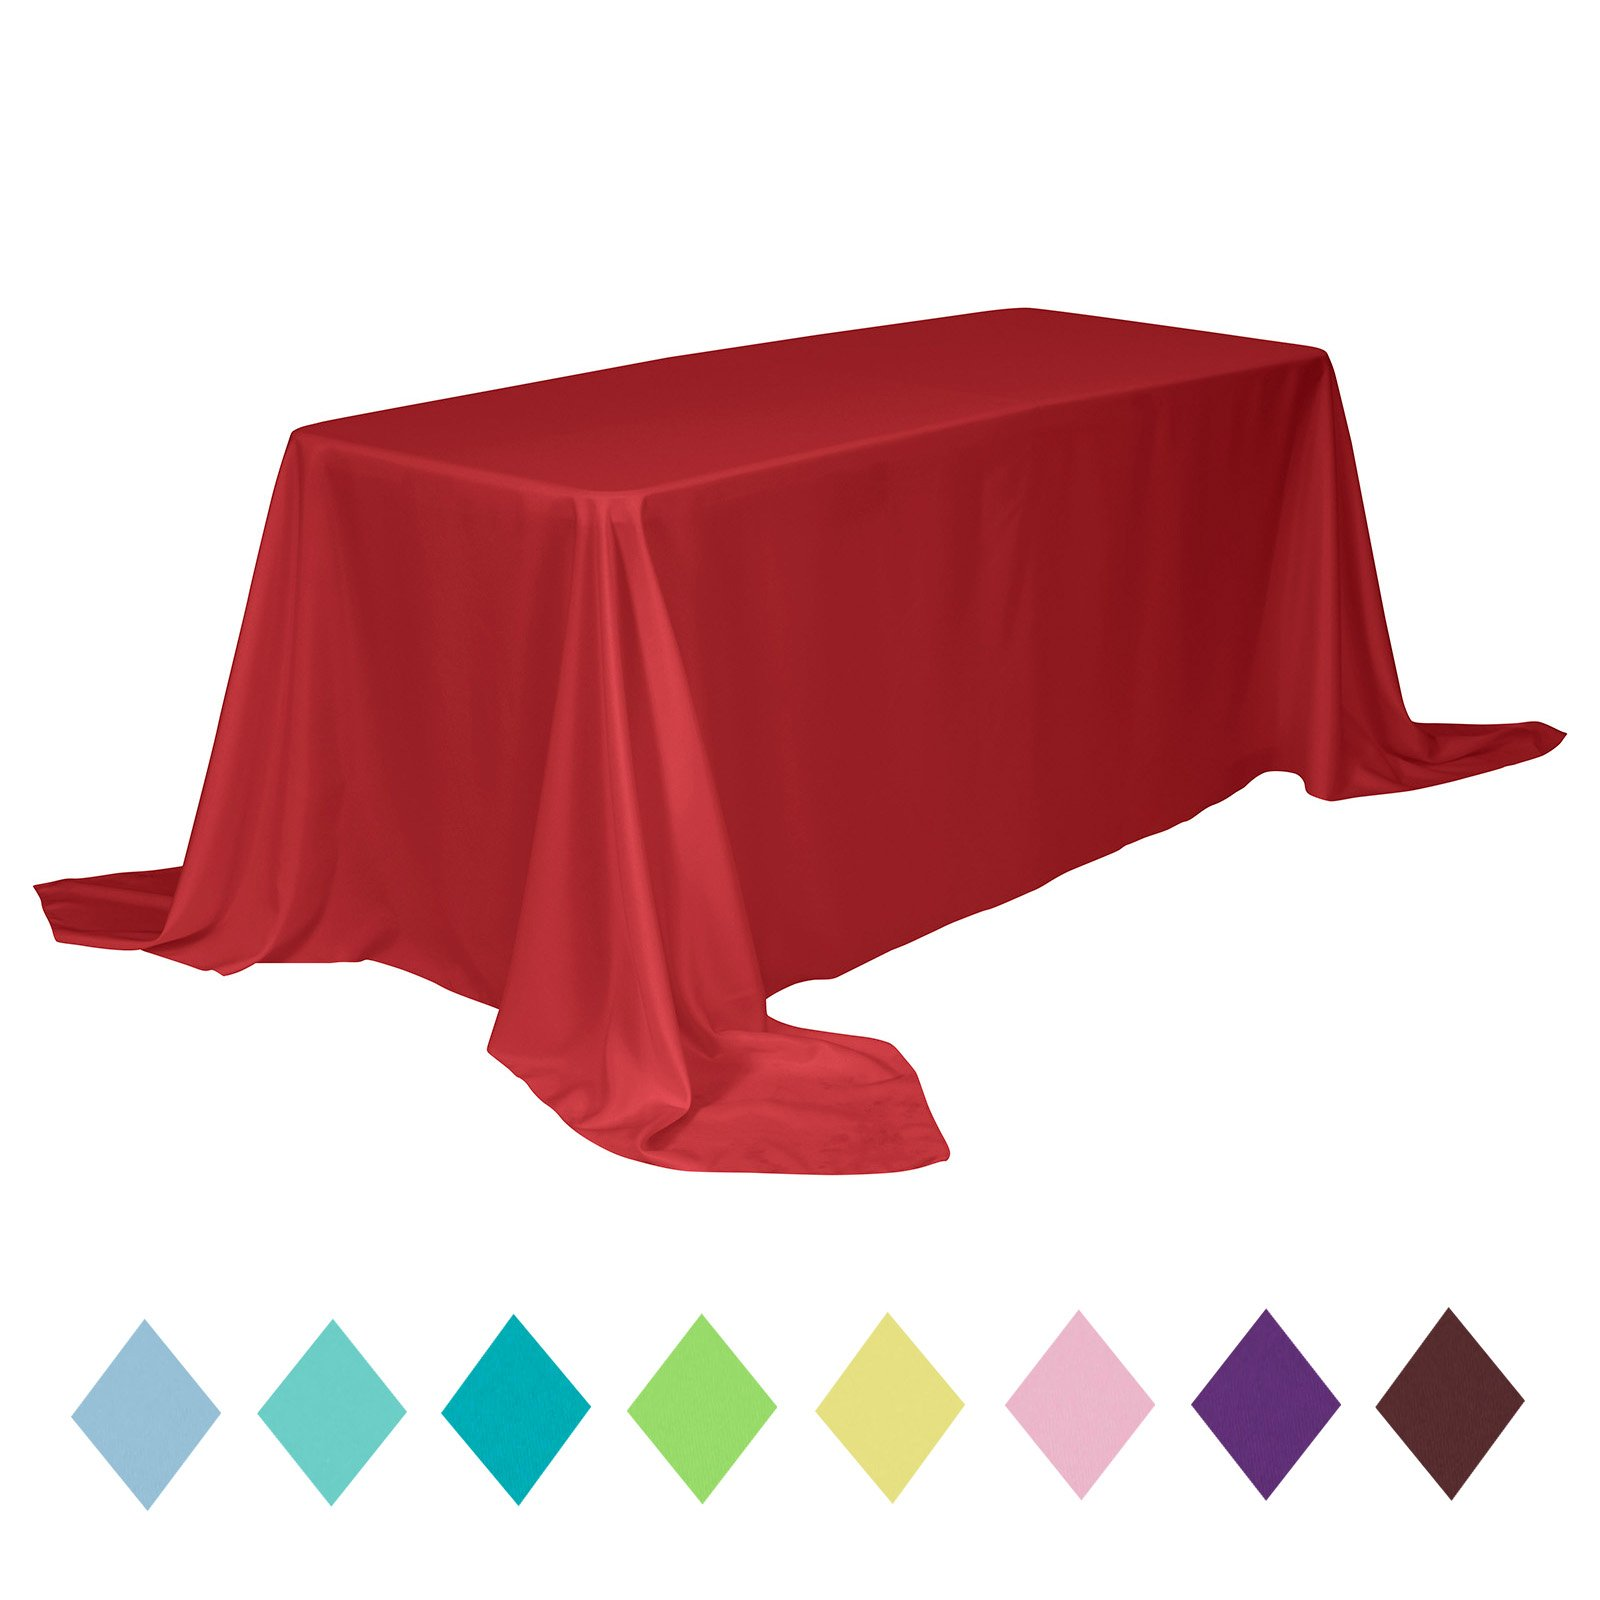 VEEYOO Rectangle Table Cloth Solid Color Polyester Tablecloth for Baby Shower Oblong Dinner Table Cover for Wedding Party Restaurant Outdoor Picnic (Red, 90x132 inch)